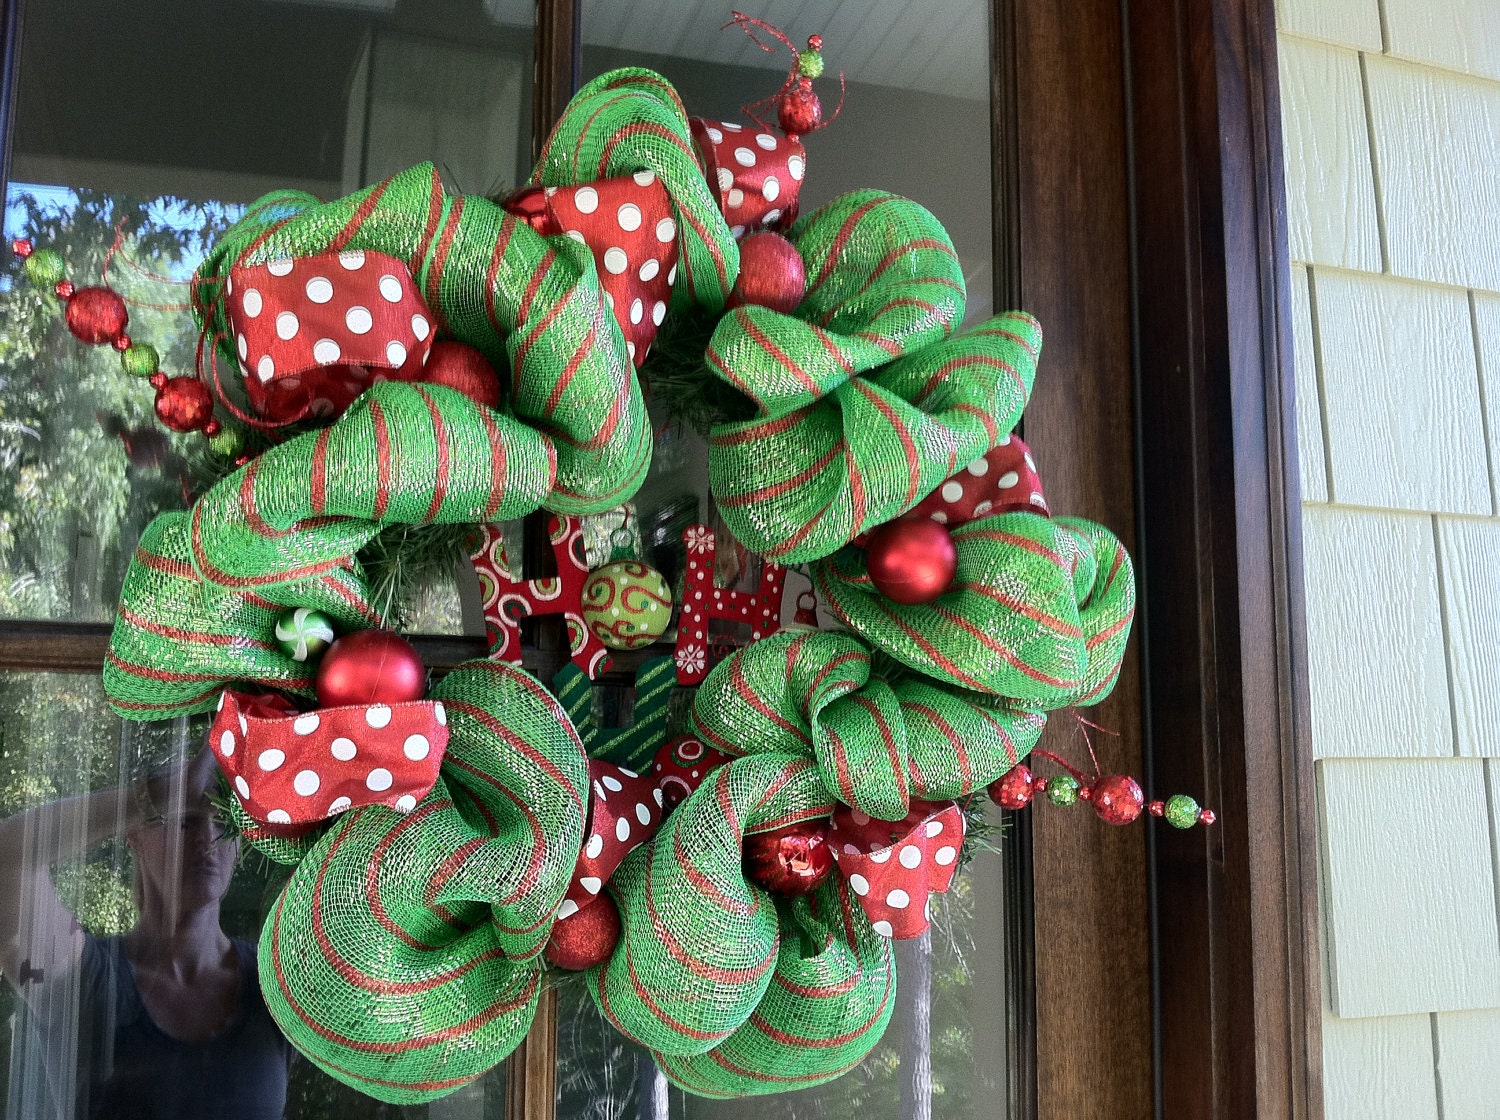 Deco Mesh Christmas Wreath By DirtRoadCreations1 On Etsy